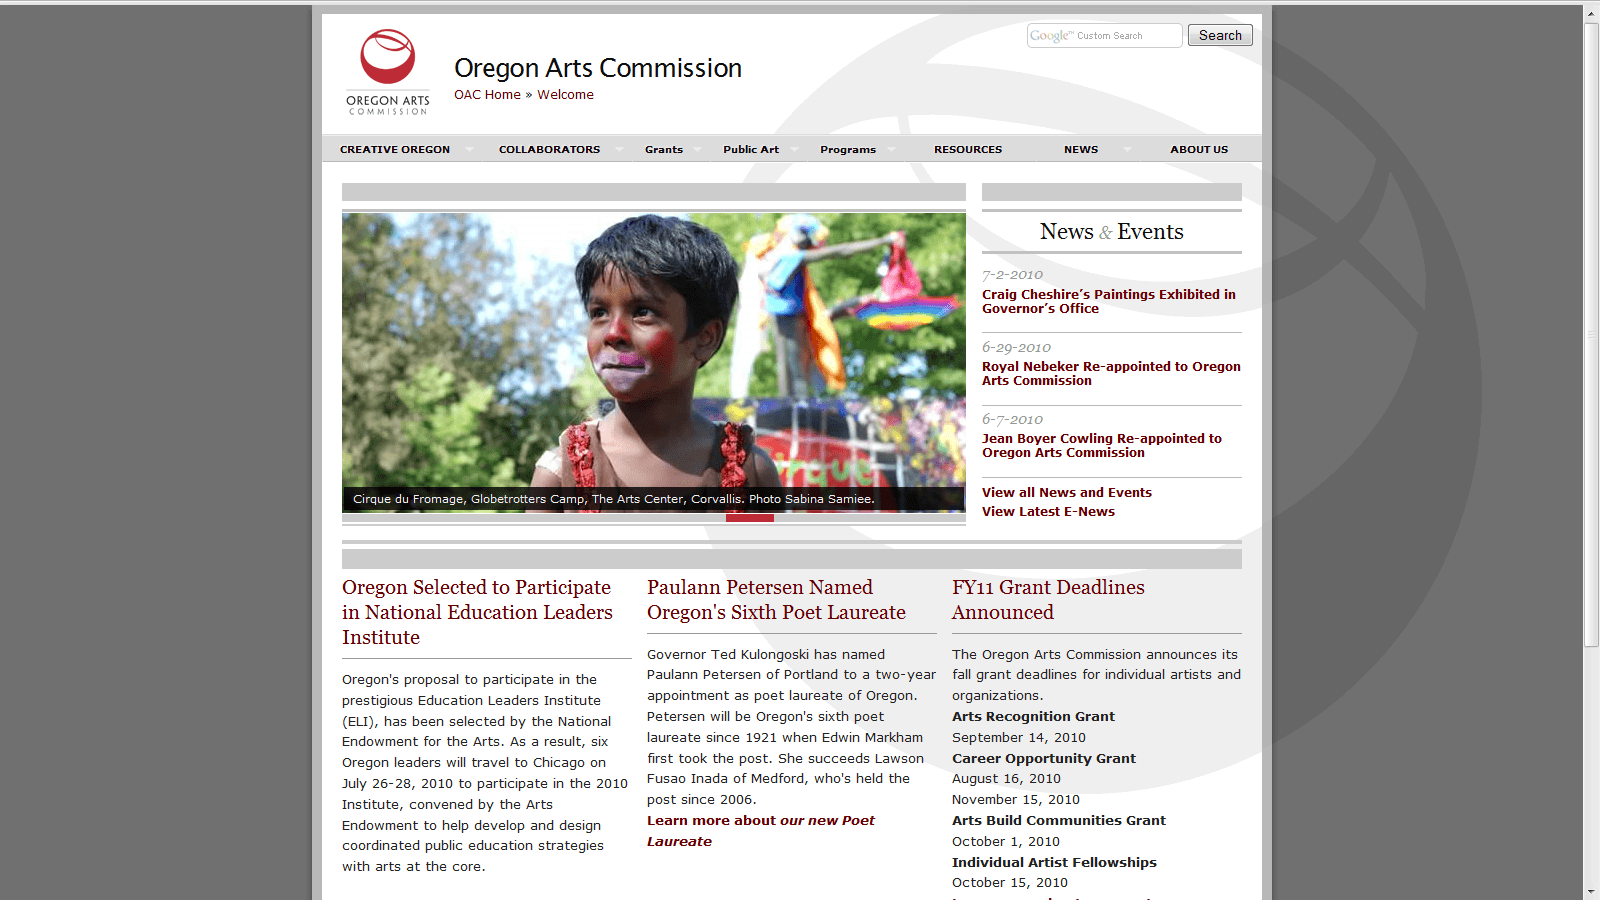 Oregon Arts Commission home page